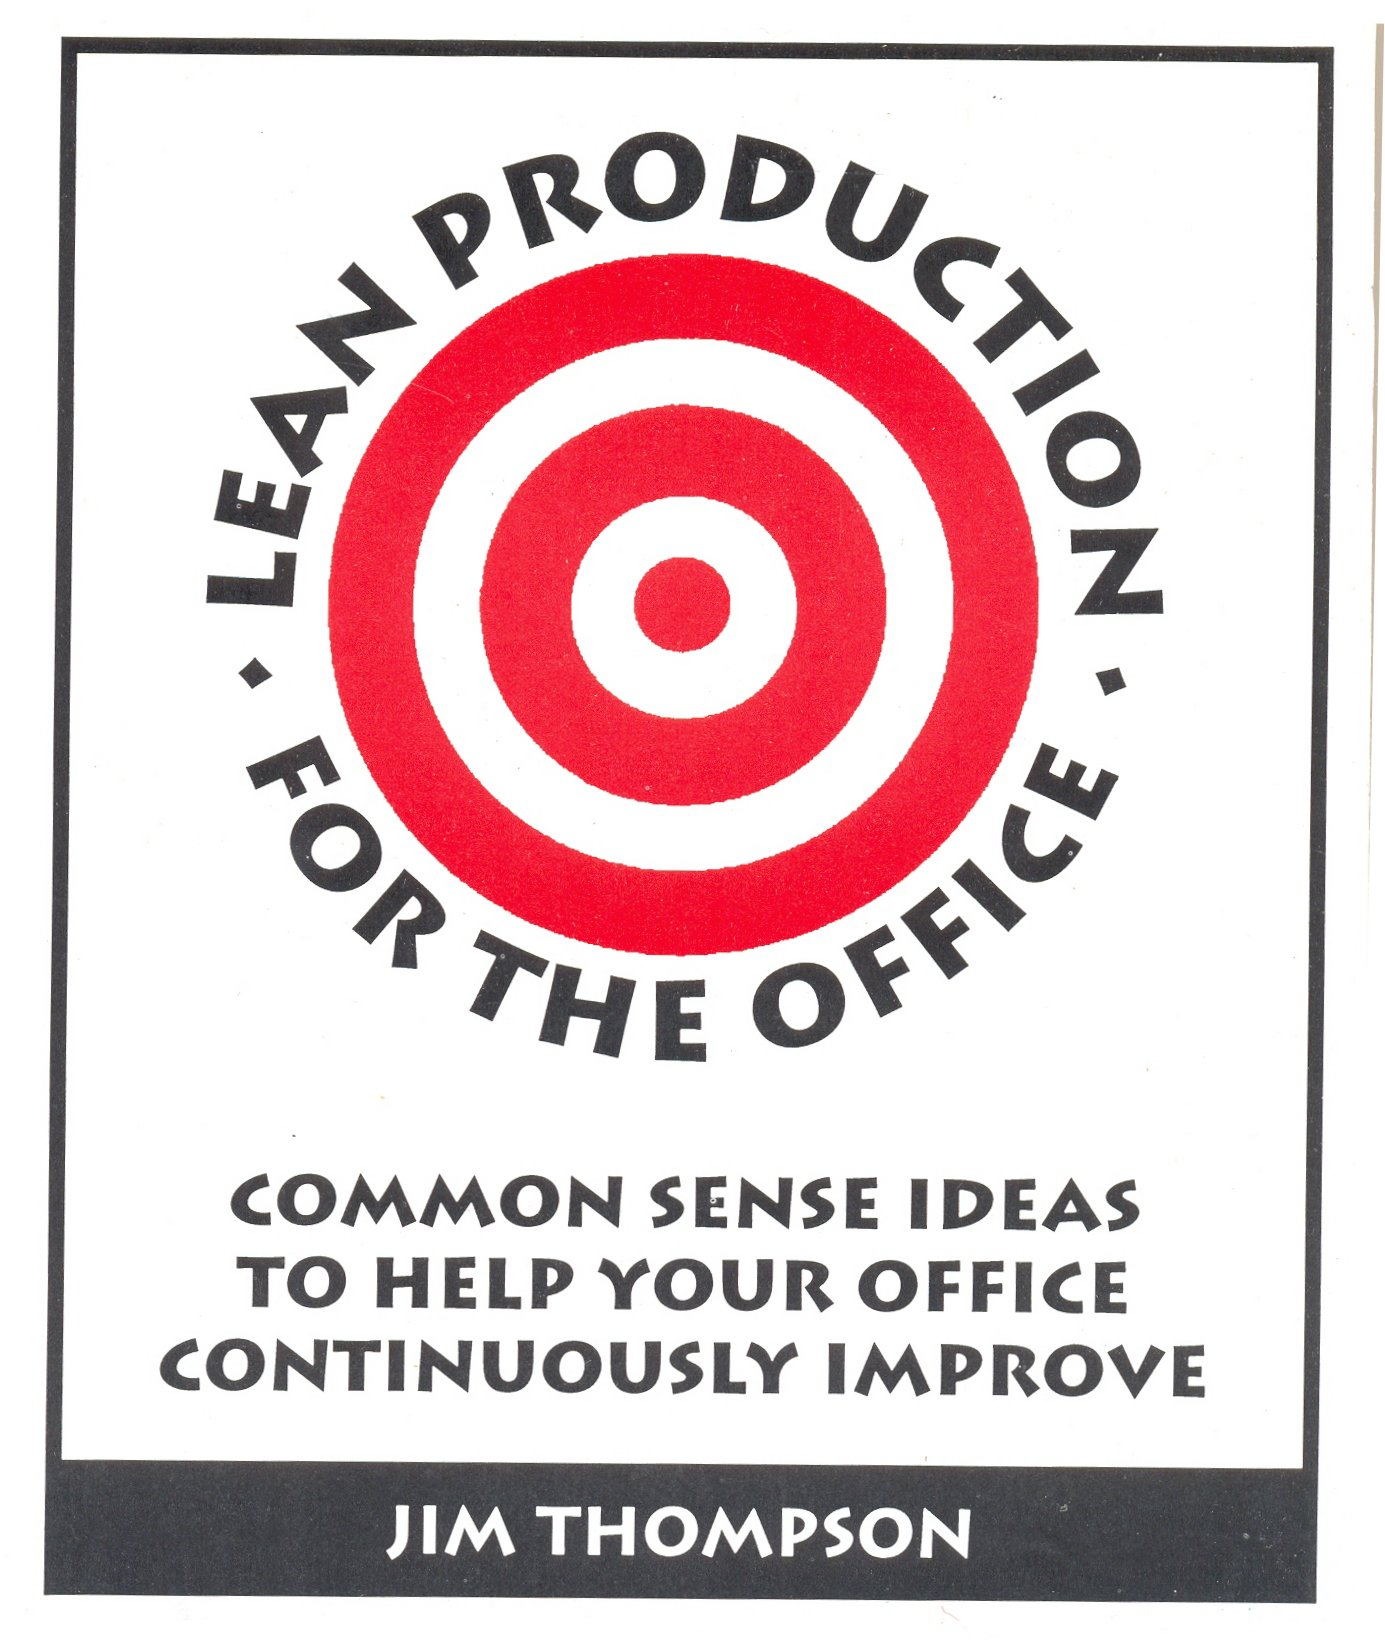 Lean Production for the Office: Common Sense Ideas to Help Your Office Continuously Improve